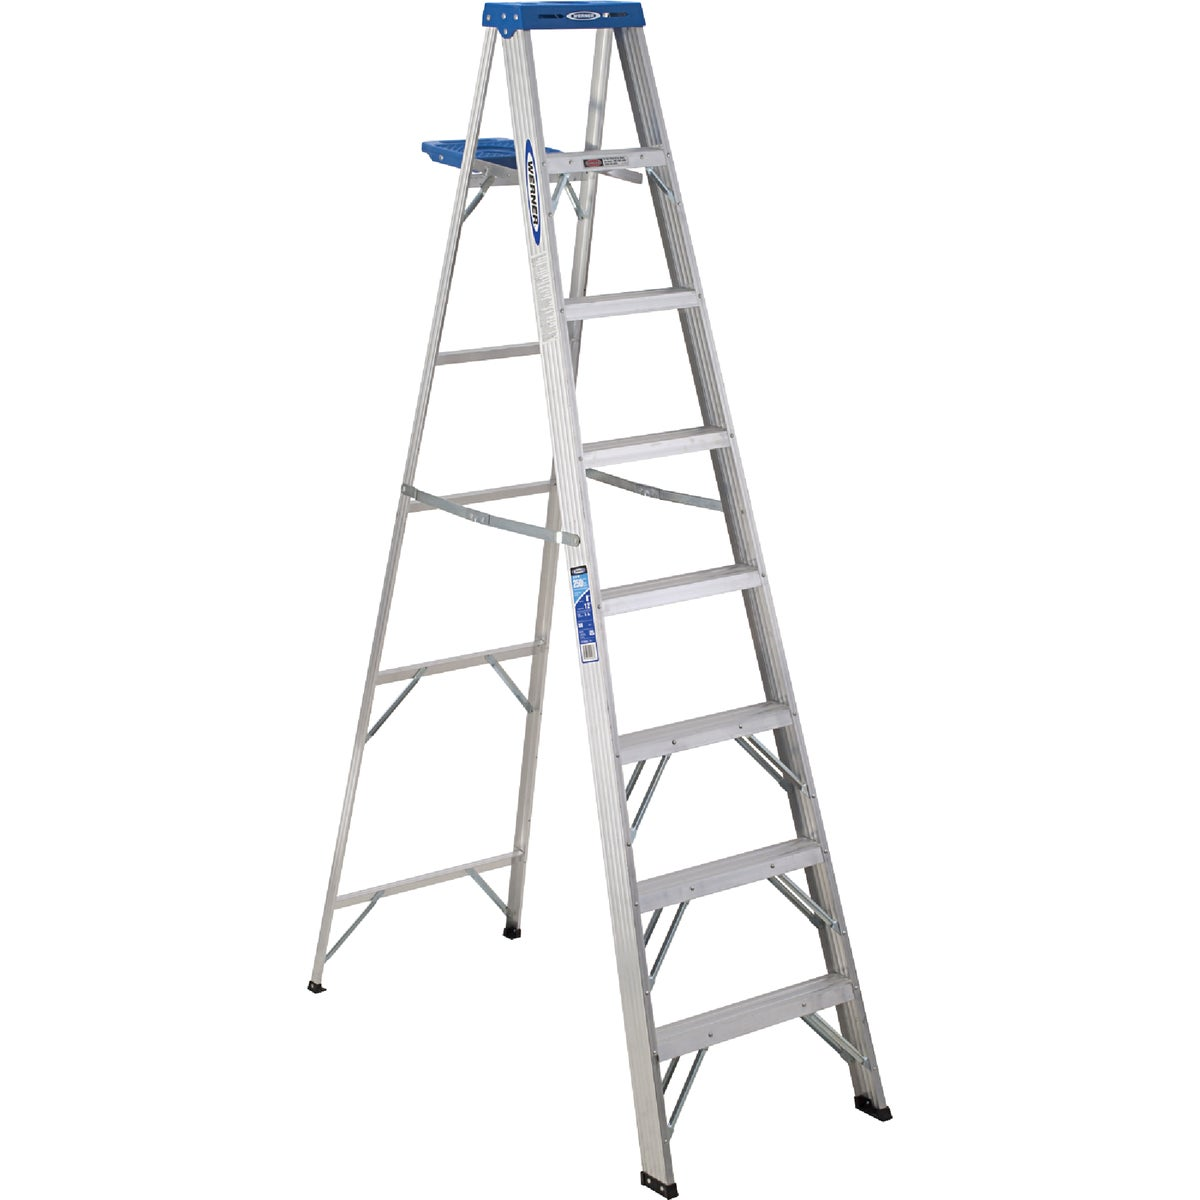 T-1 8' ALUM STEPLADDER - 368 by Werner Co